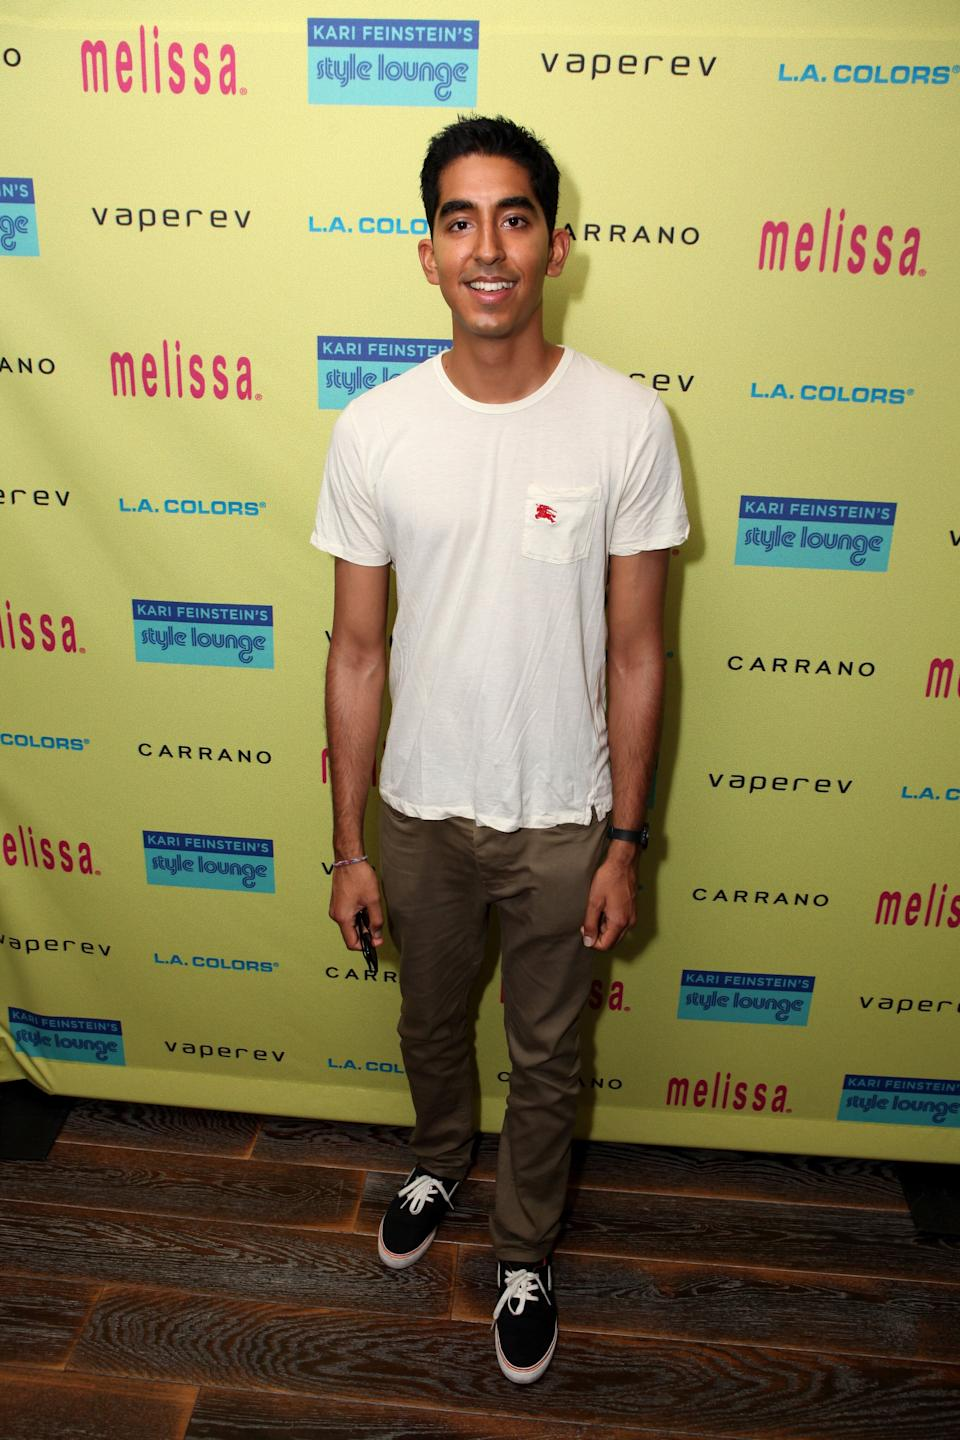 Patel at Kari Feinstein's Pre-Emmy Style Lounge at the Andaz Hotel in Los Angeles on Sept. 19, 2013.